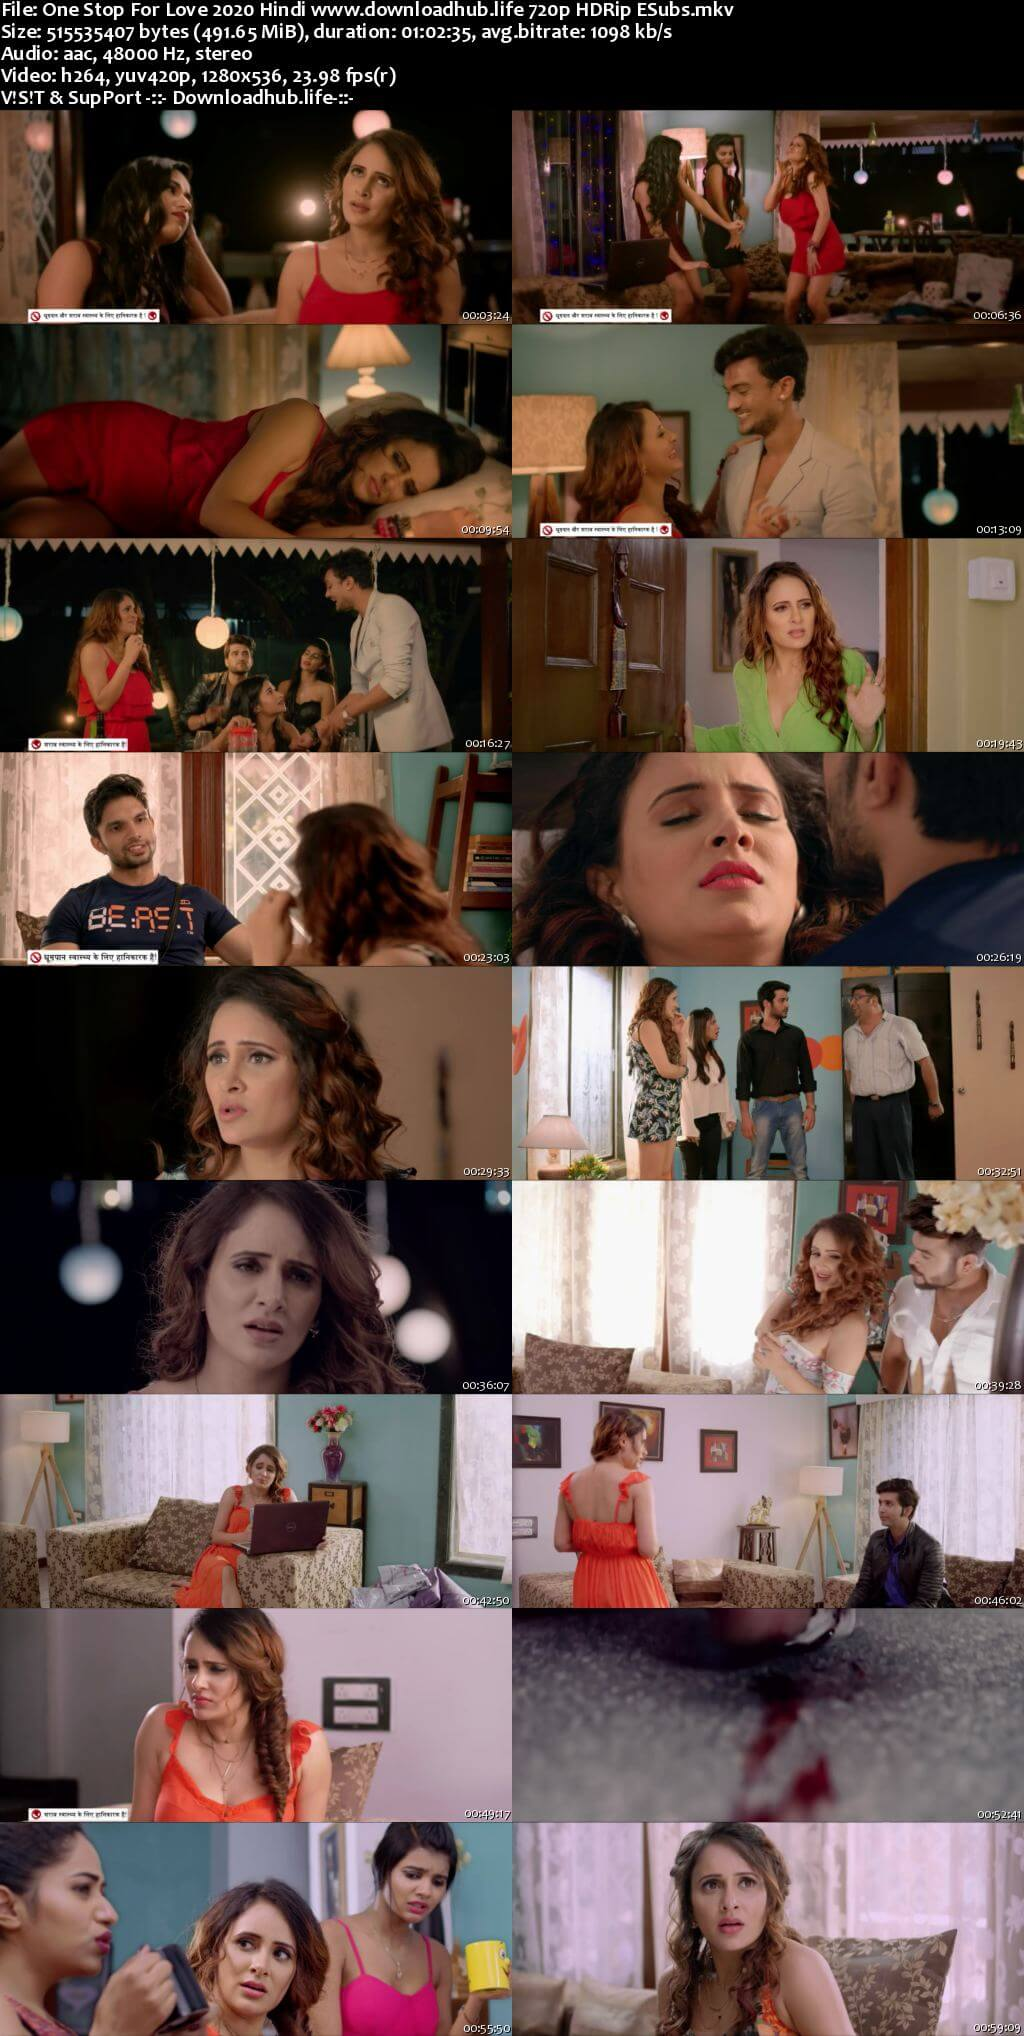 One Stop For Love 2020 Hindi 720p HDRip ESubs